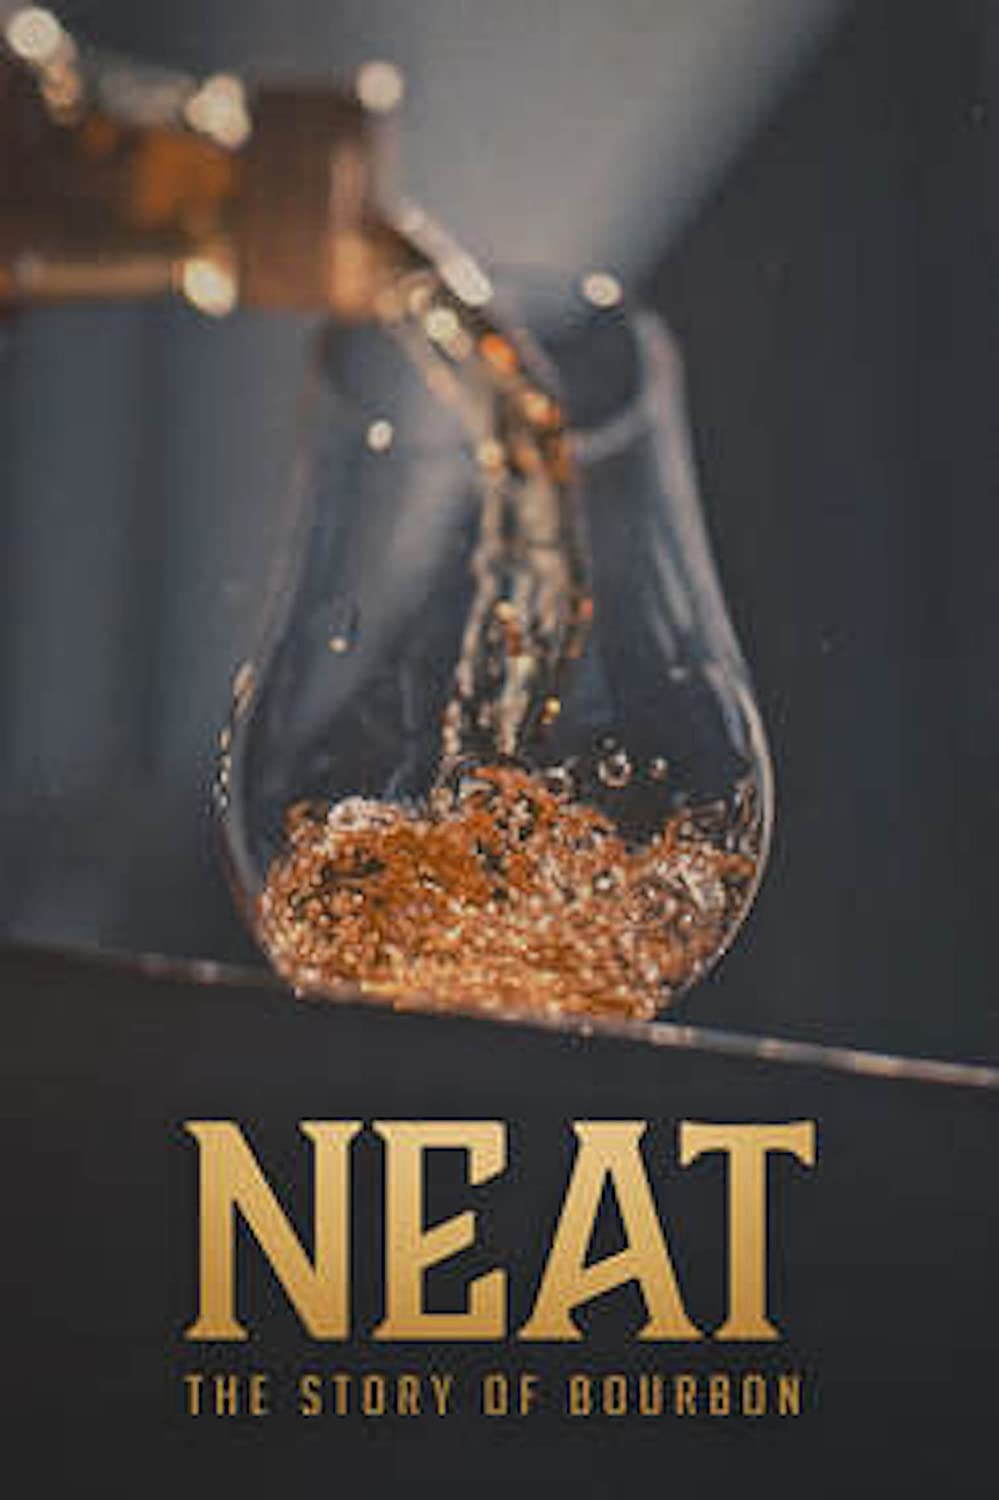 Neat: Story of Bourbon